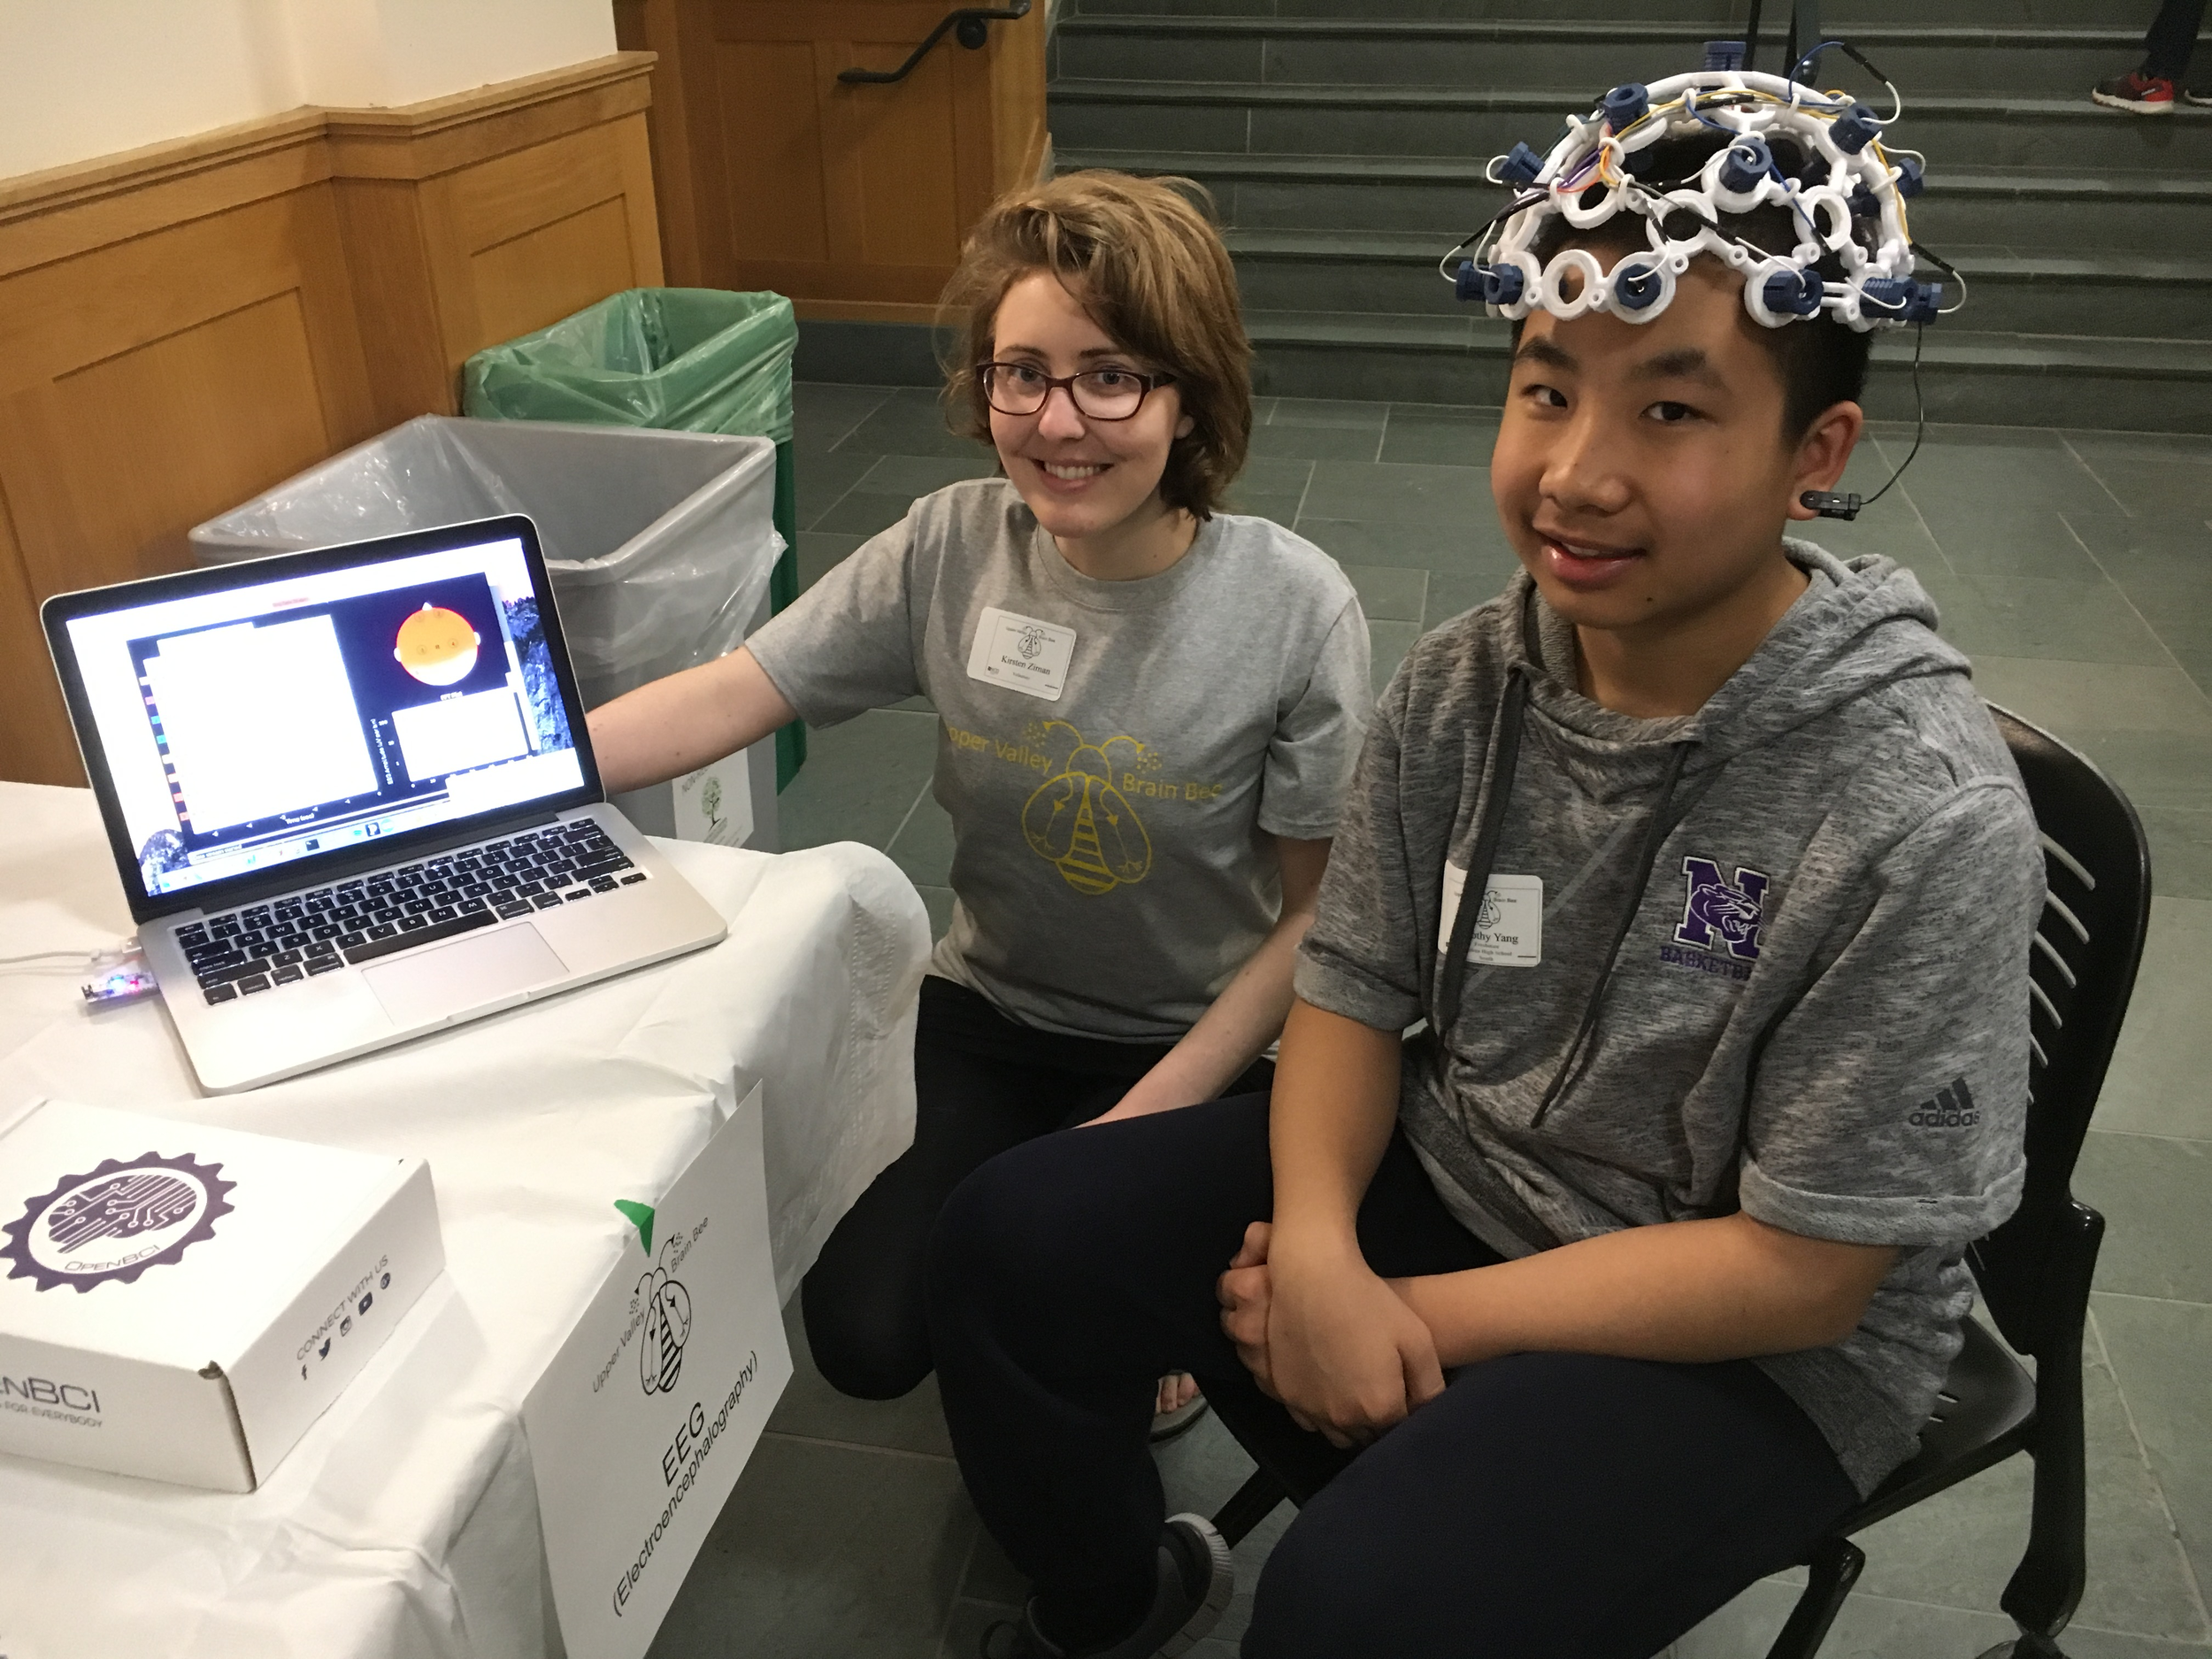 PBS Graduate Student and EPSCoR Attention Consortium Member,Kirsten Ziman, TEACHING the public about EEG recordings using a 3D printed headset during the Brain Bee on April 22nd, 2017 at Dartmouth College.